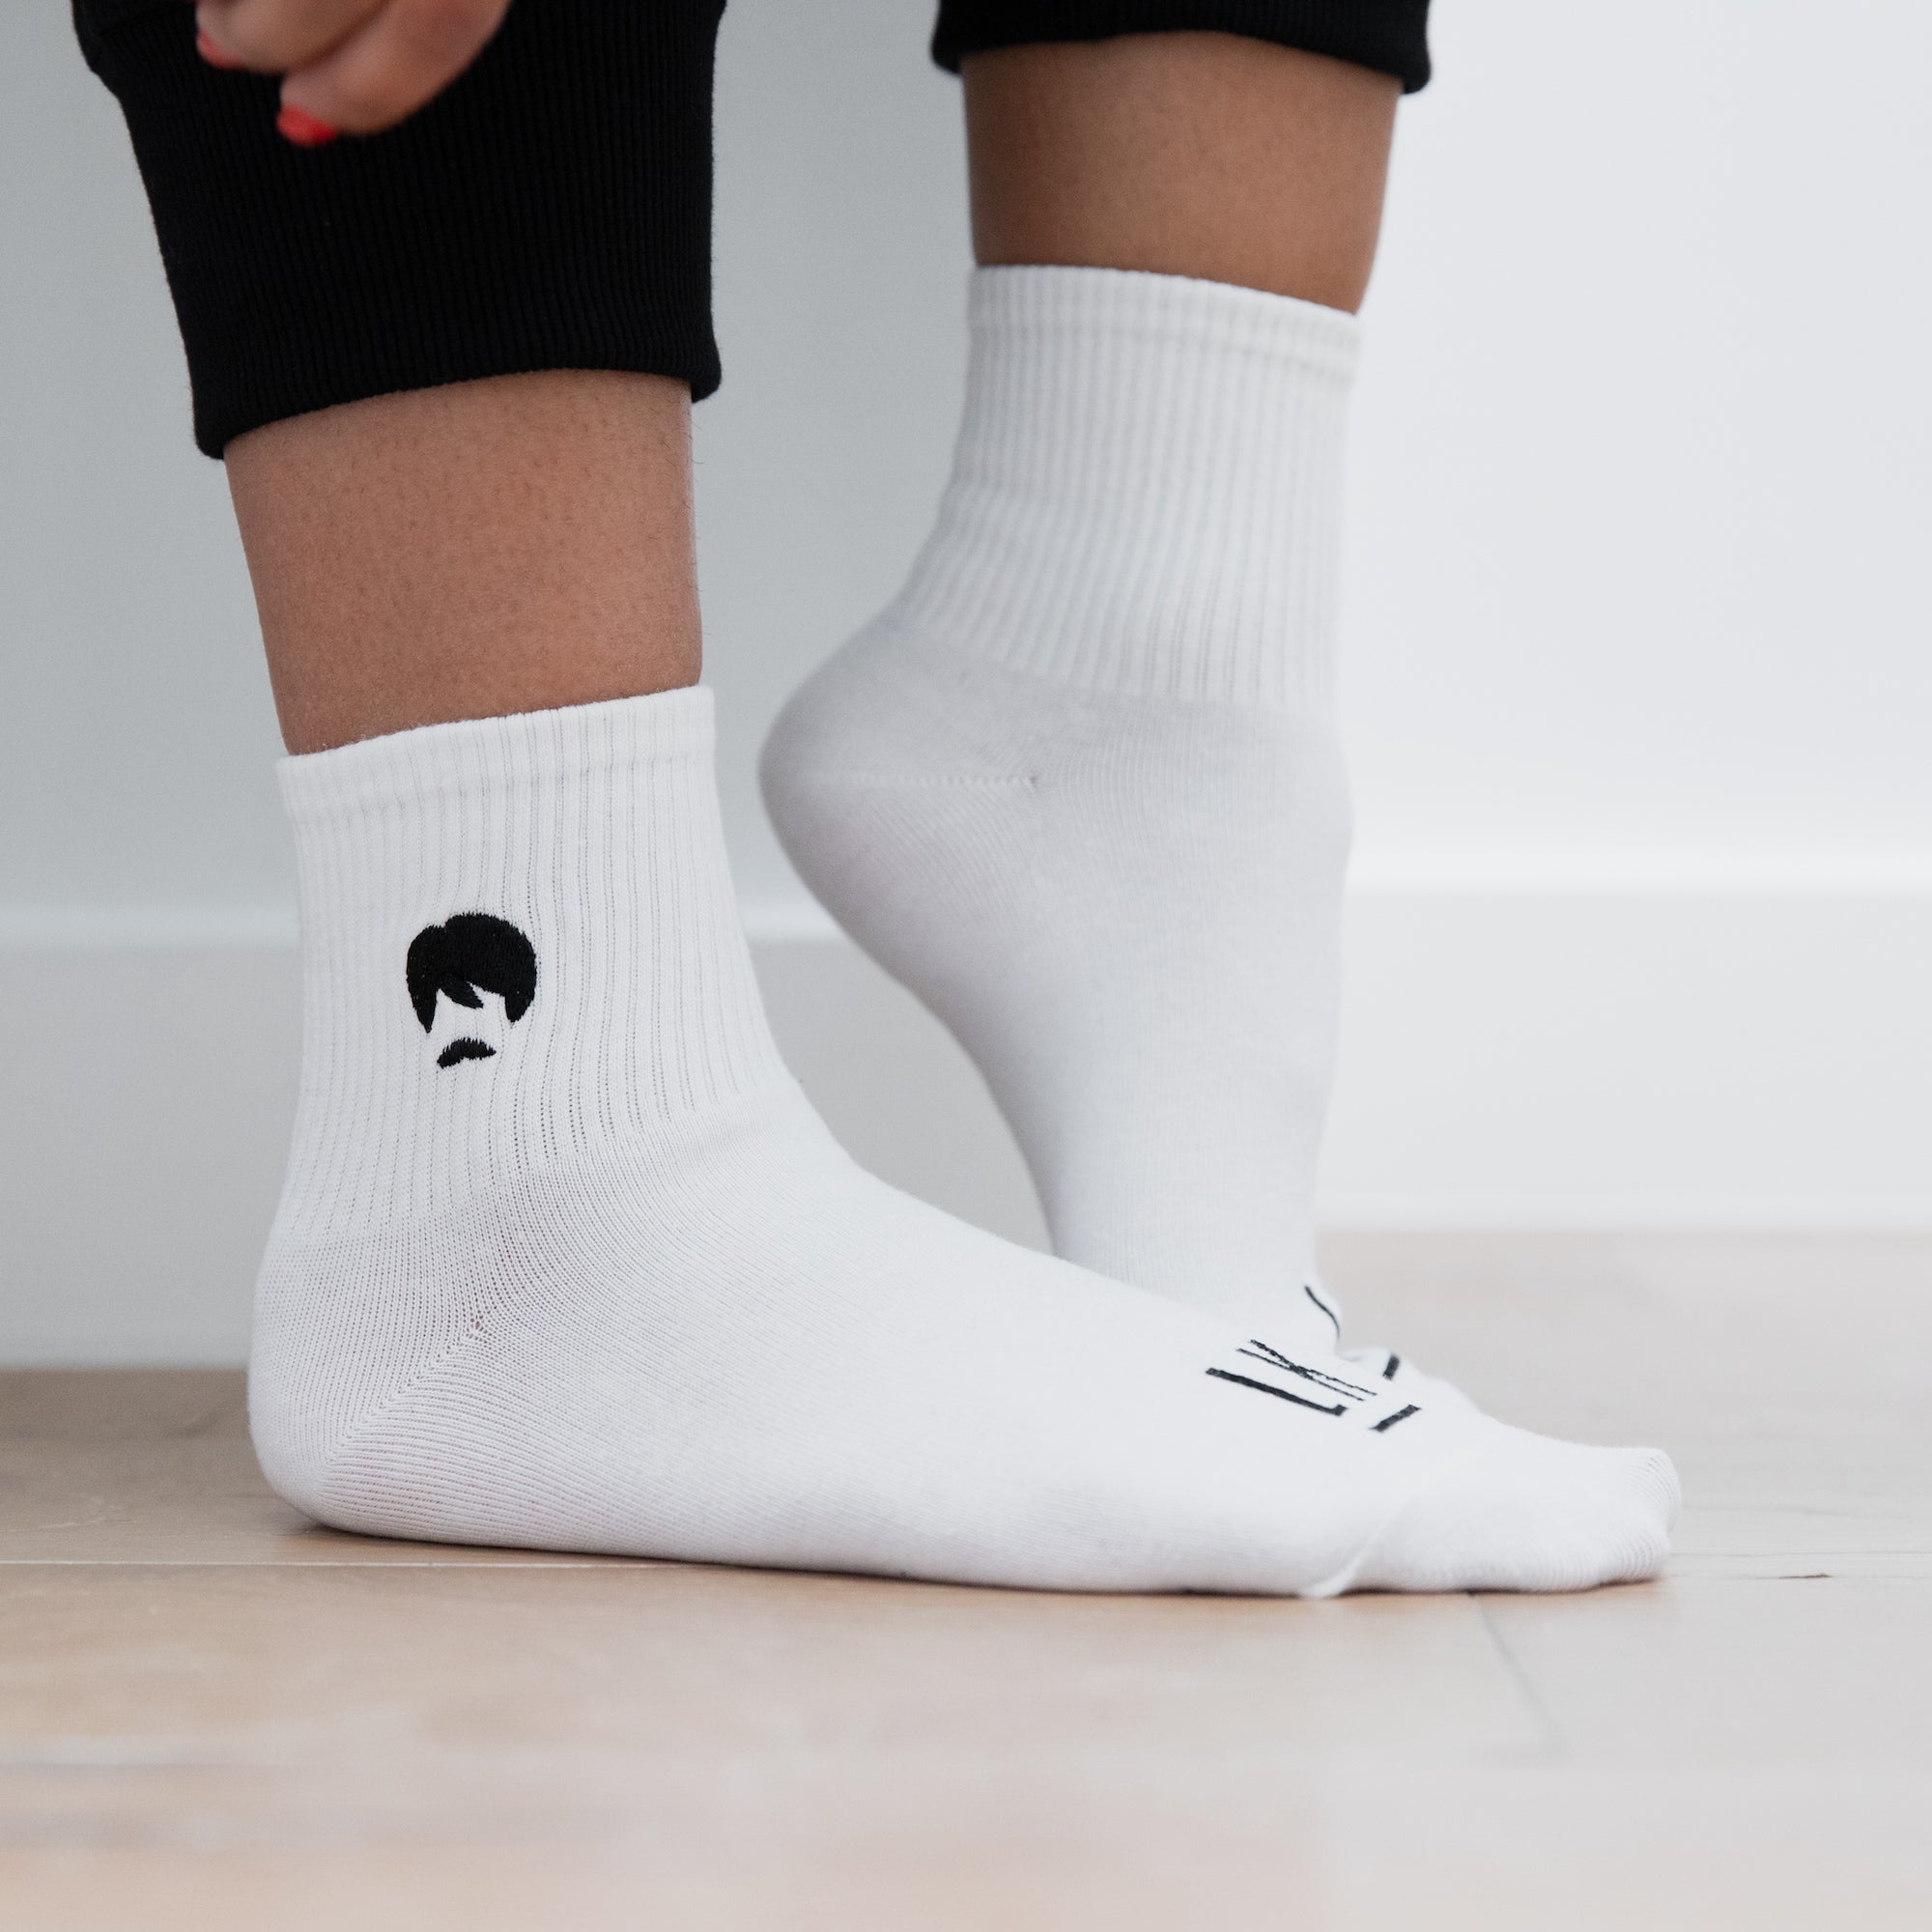 Sexy in your sock